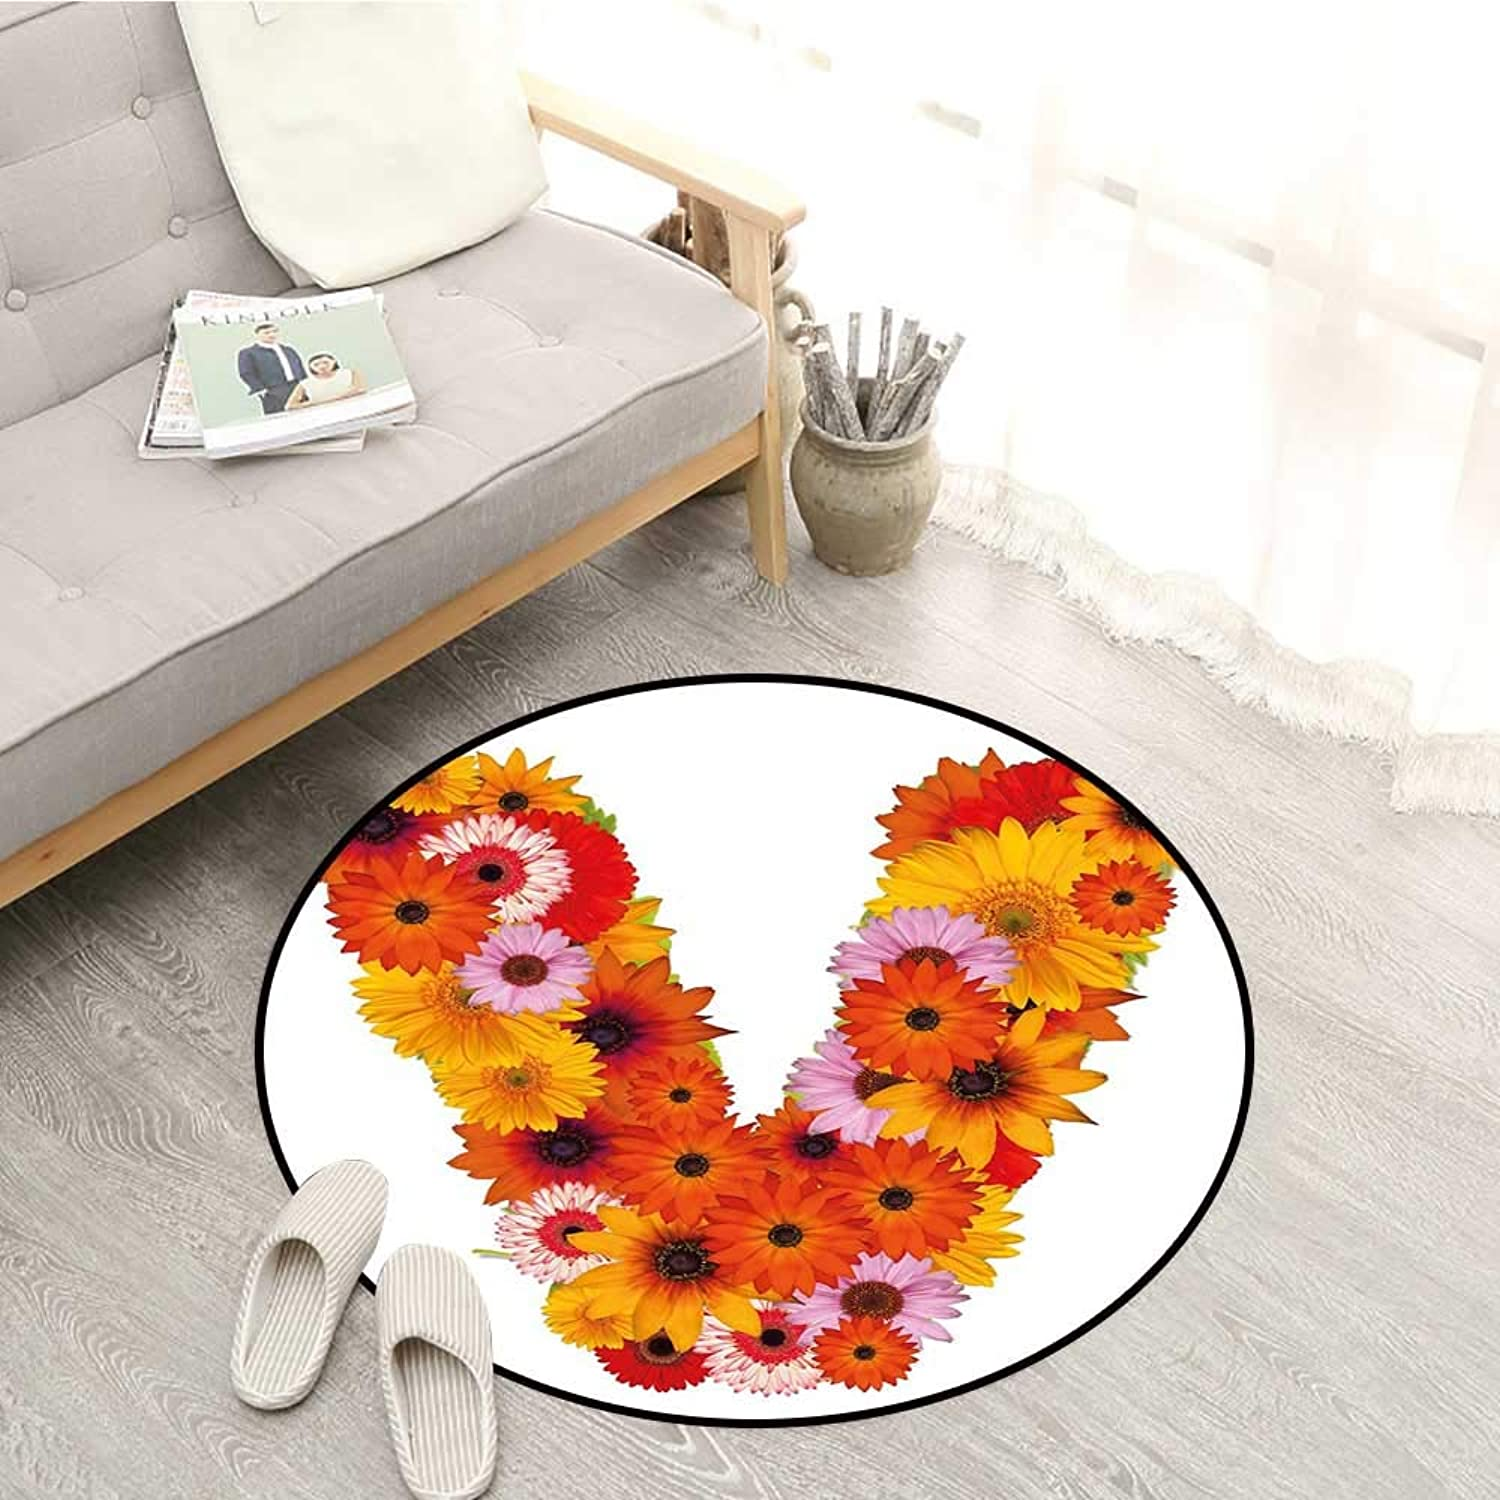 Letter V Skid-Resistant Rugs Summer Season colors with Vibrant Nature Blossom Healthy World V Alphabet Capital Sofa Coffee Table Mat 4'3  Multicolor